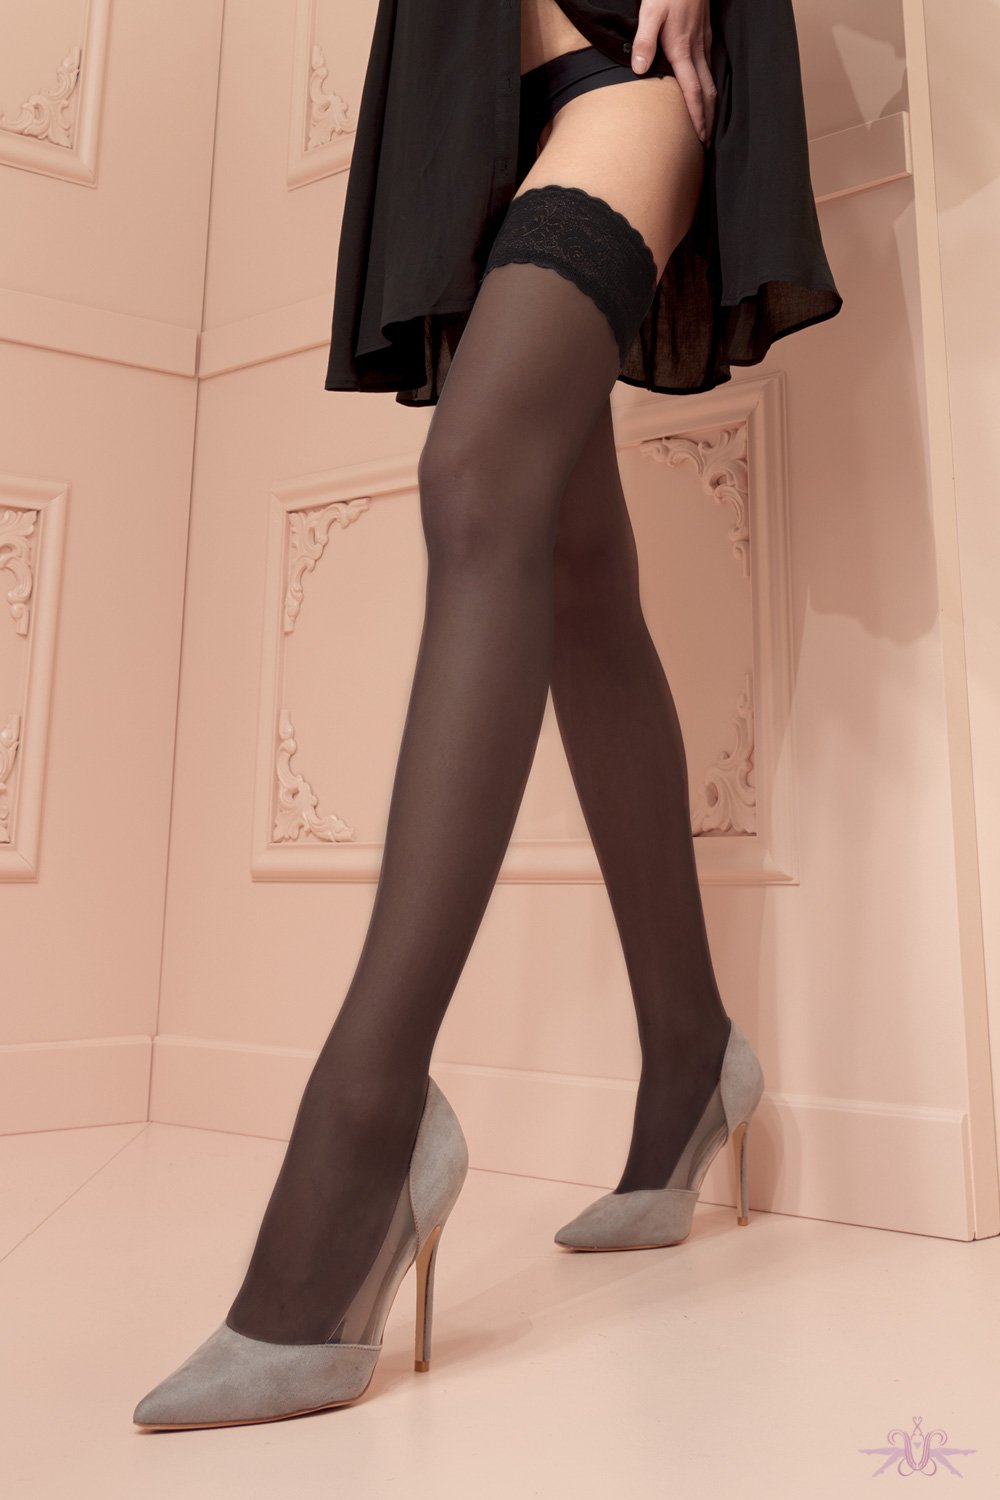 Trasparenze Rosy Hold Ups - The Hosiery Box